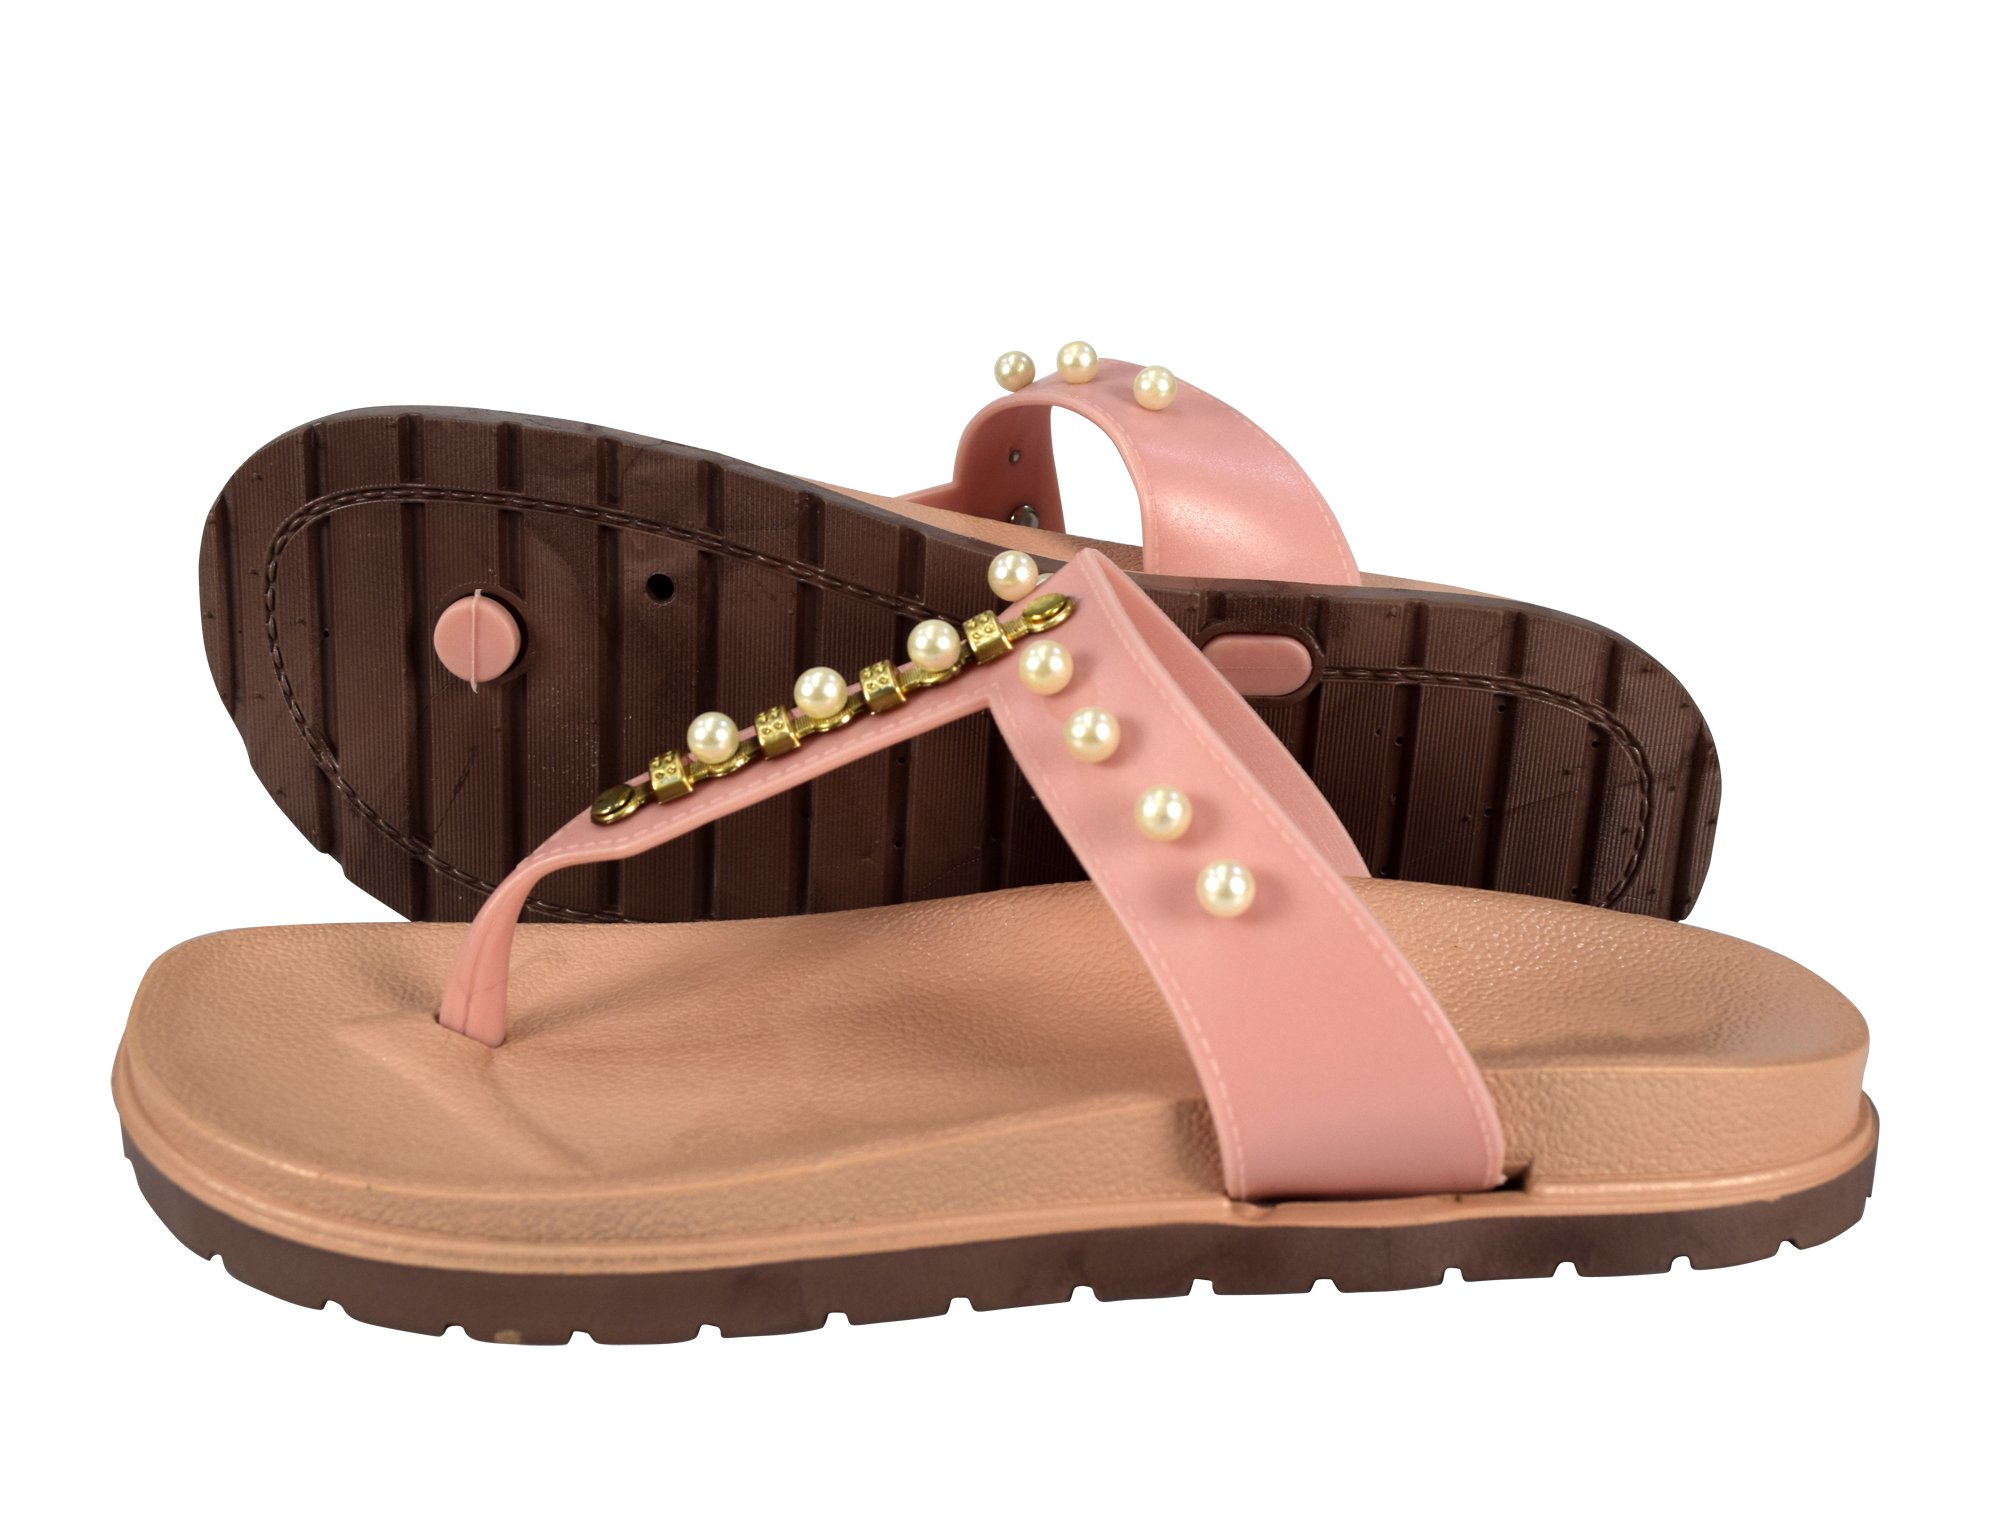 Peach Couture Summer Pearl Studded Slip On Flats Slides Sandals Pink 7 B(M) US